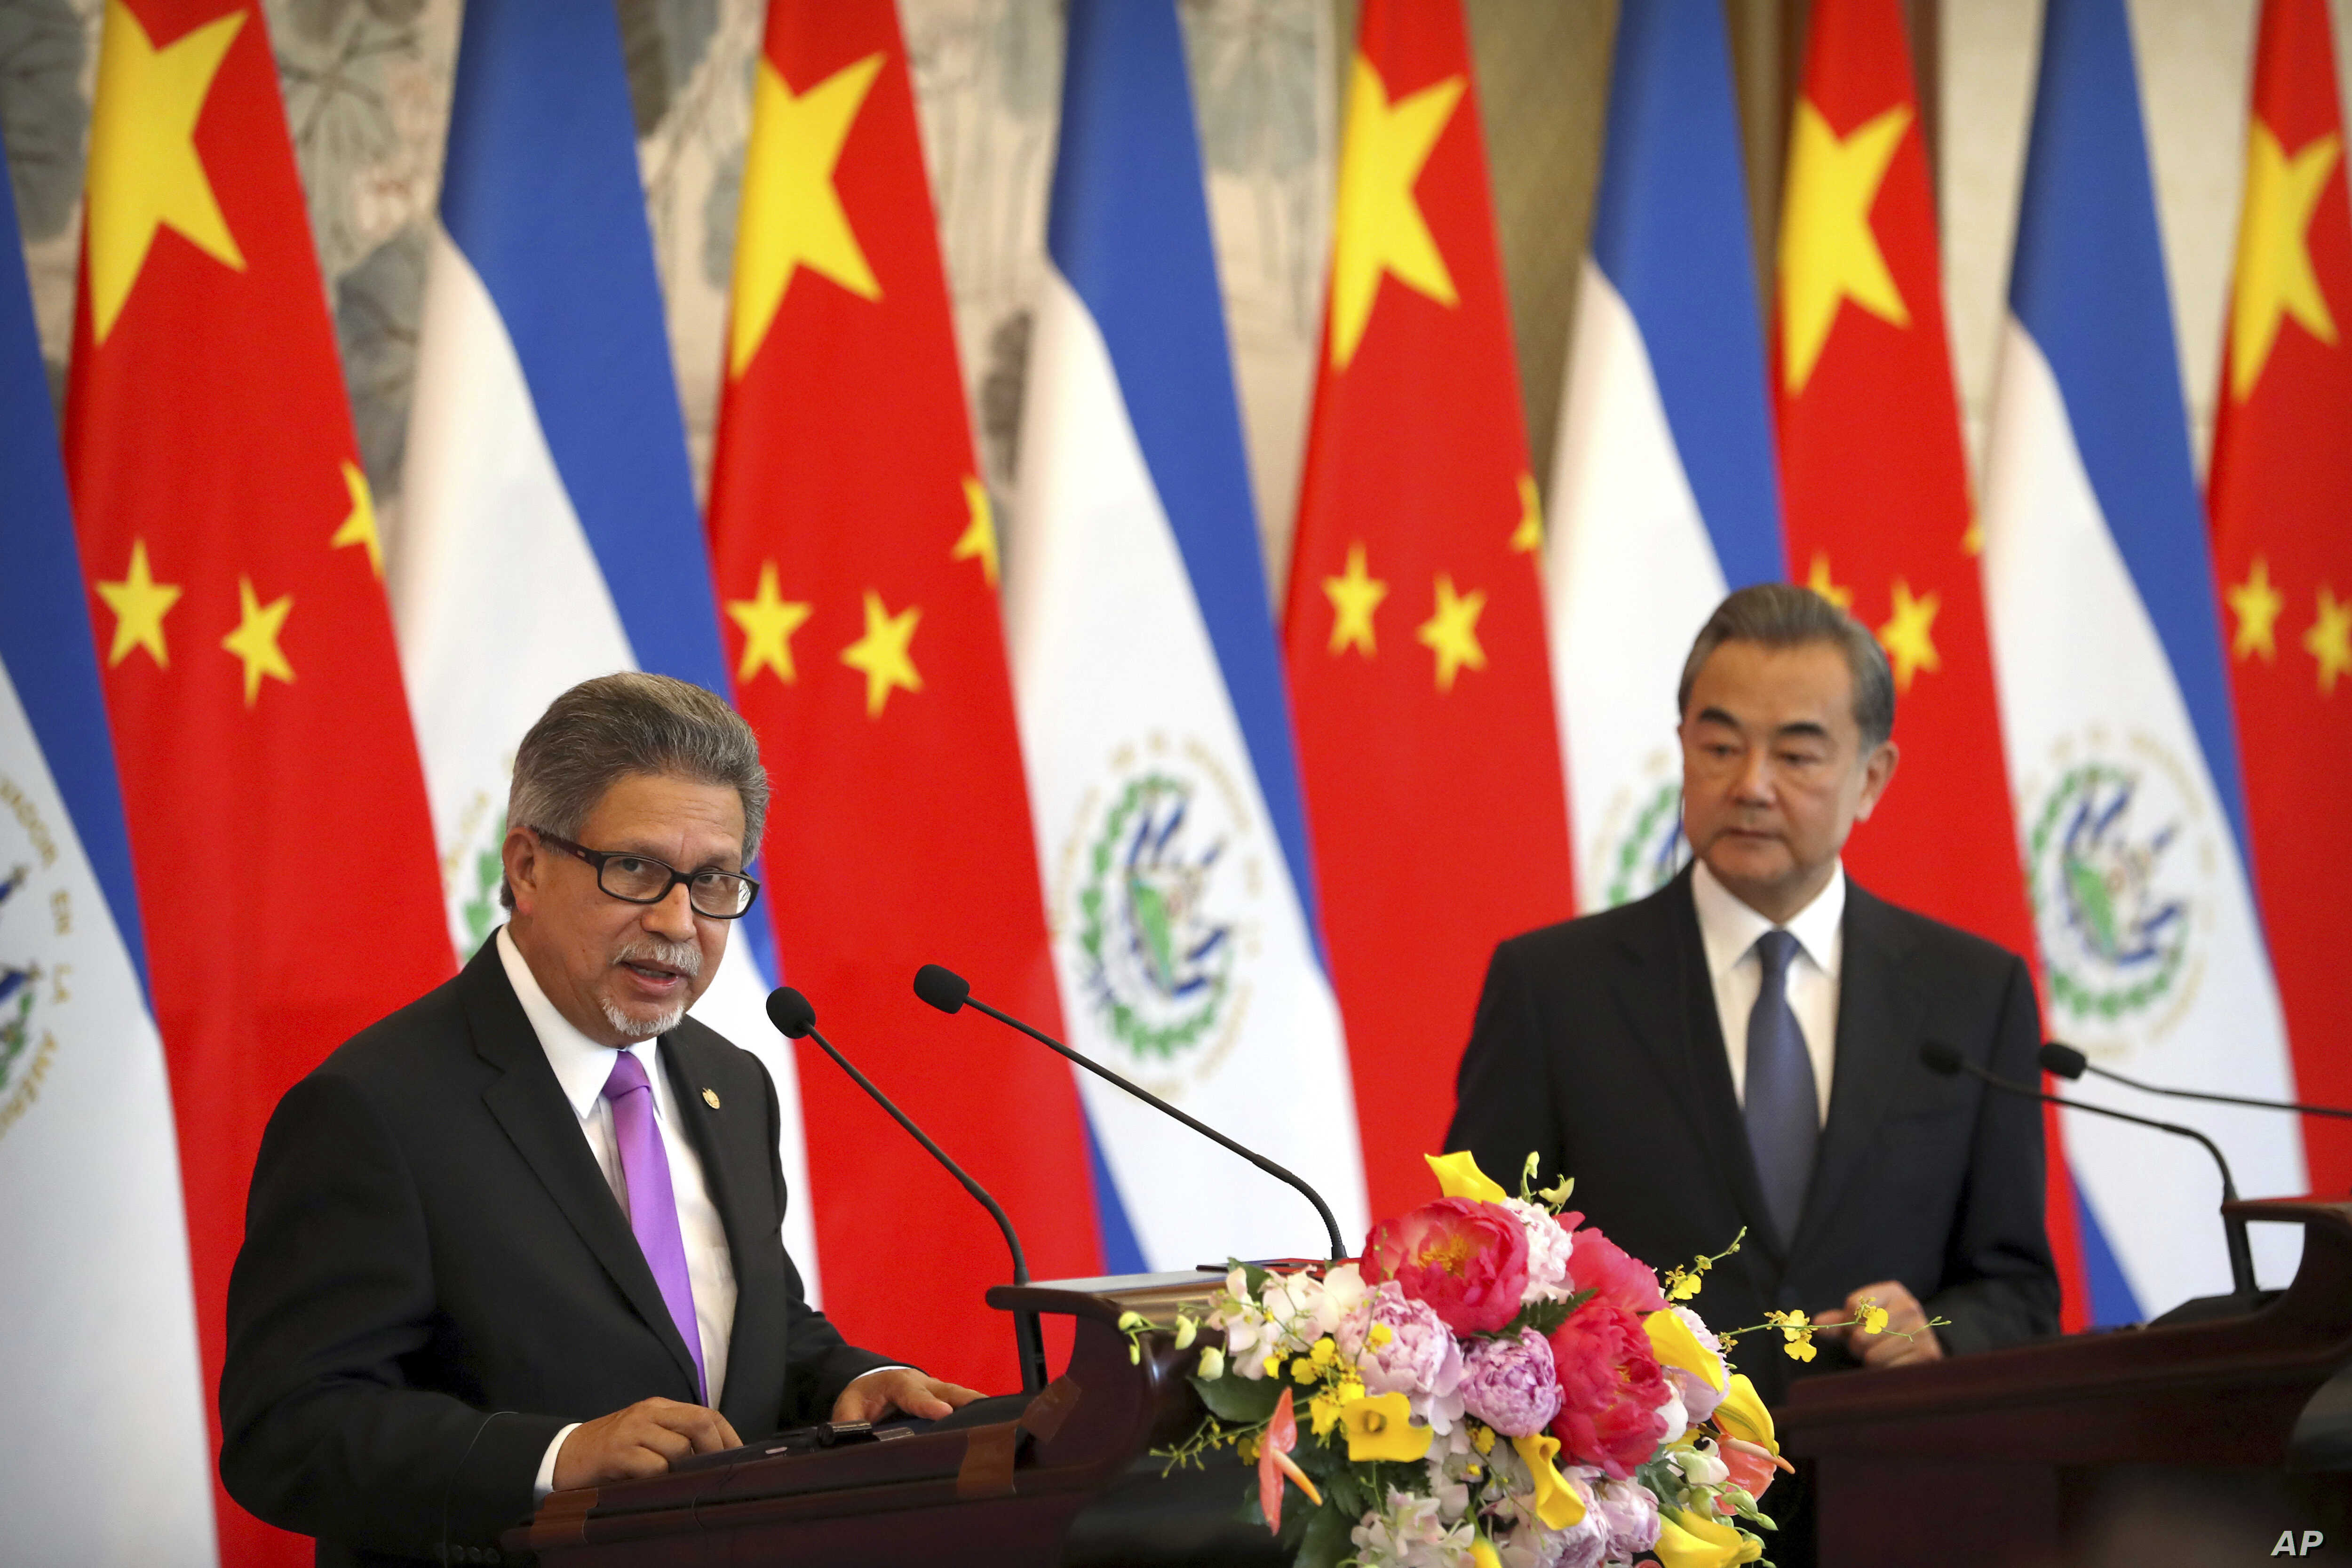 Eyeing China Us Scolds El Salvador Warns Others On Cutting